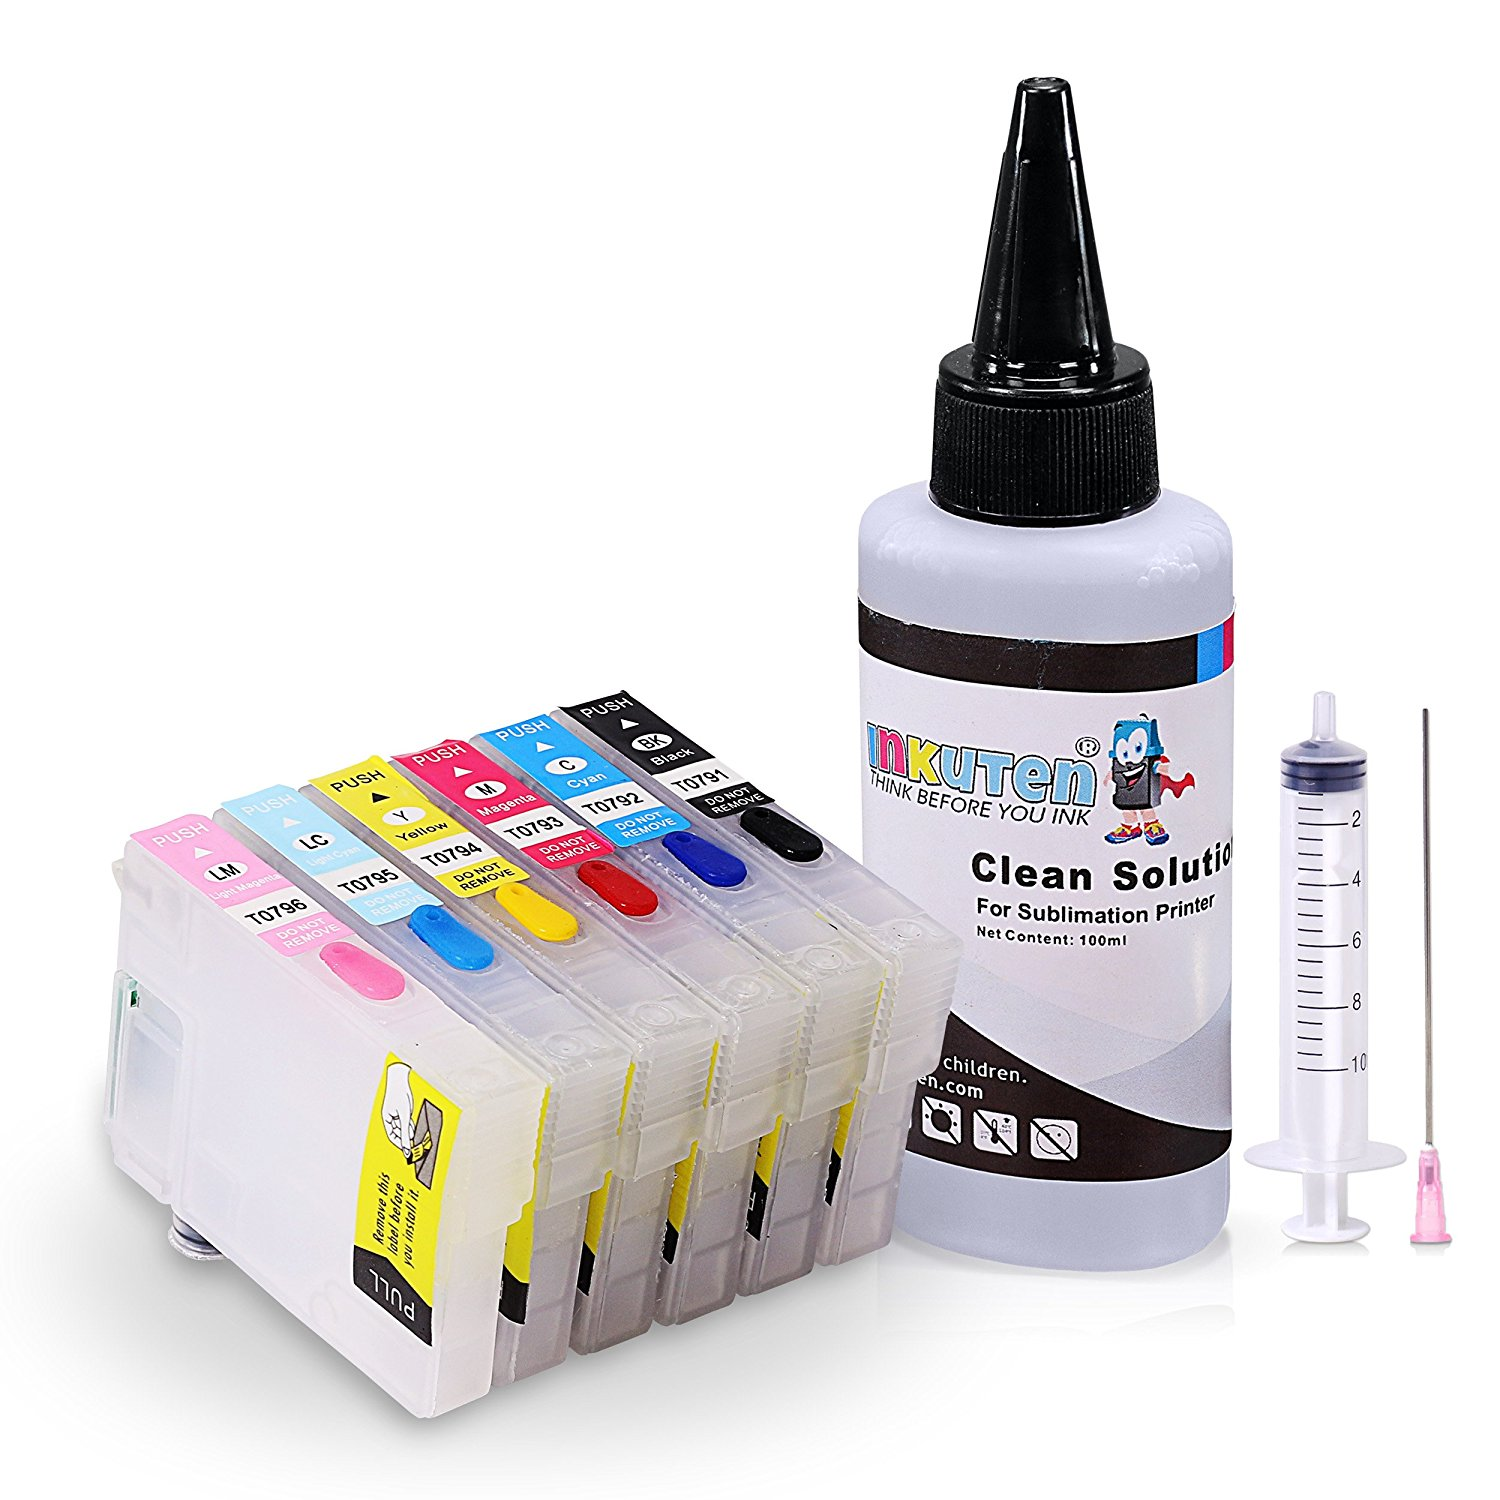 Sublimation Cleaning kit for EPSON Artisan 1430 Printer T079 #79 With 100ml Sublimation Cleaning Solution